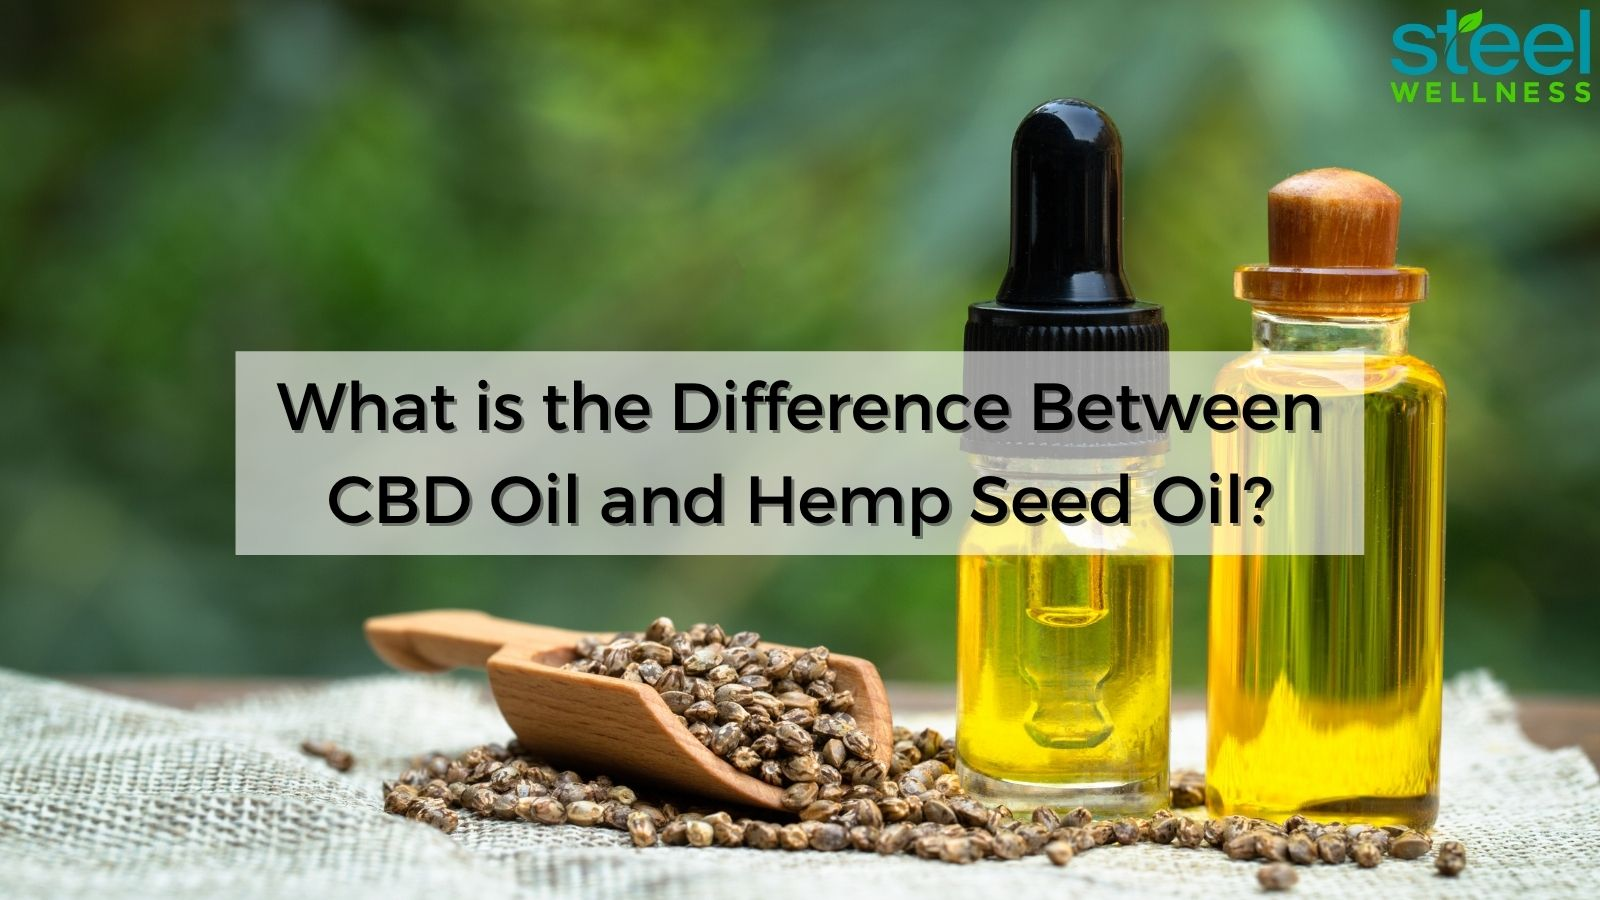 What Is The Difference Between CBD Oil And Hemp Seed Oil?